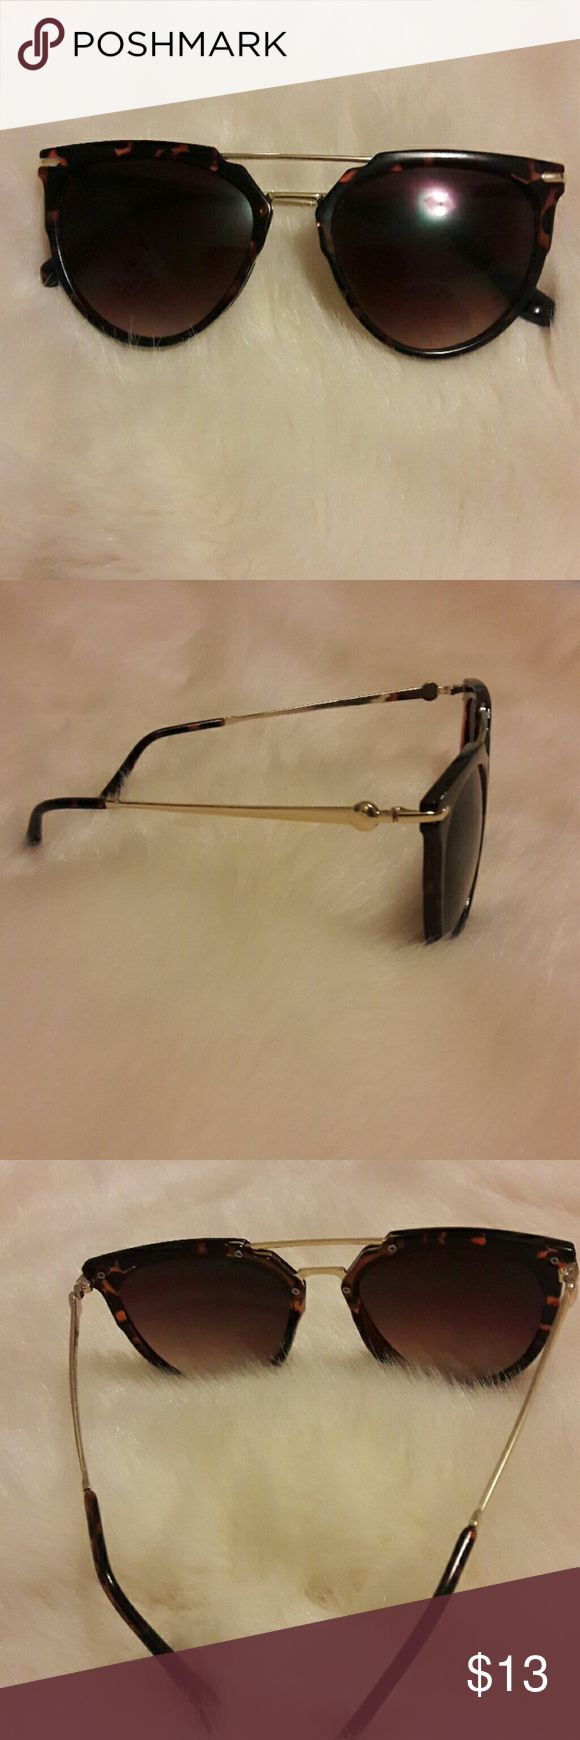 Tortoise Shell Sunglasses Never worn. No scratches Urban Outfitters Accessories Sunglasses